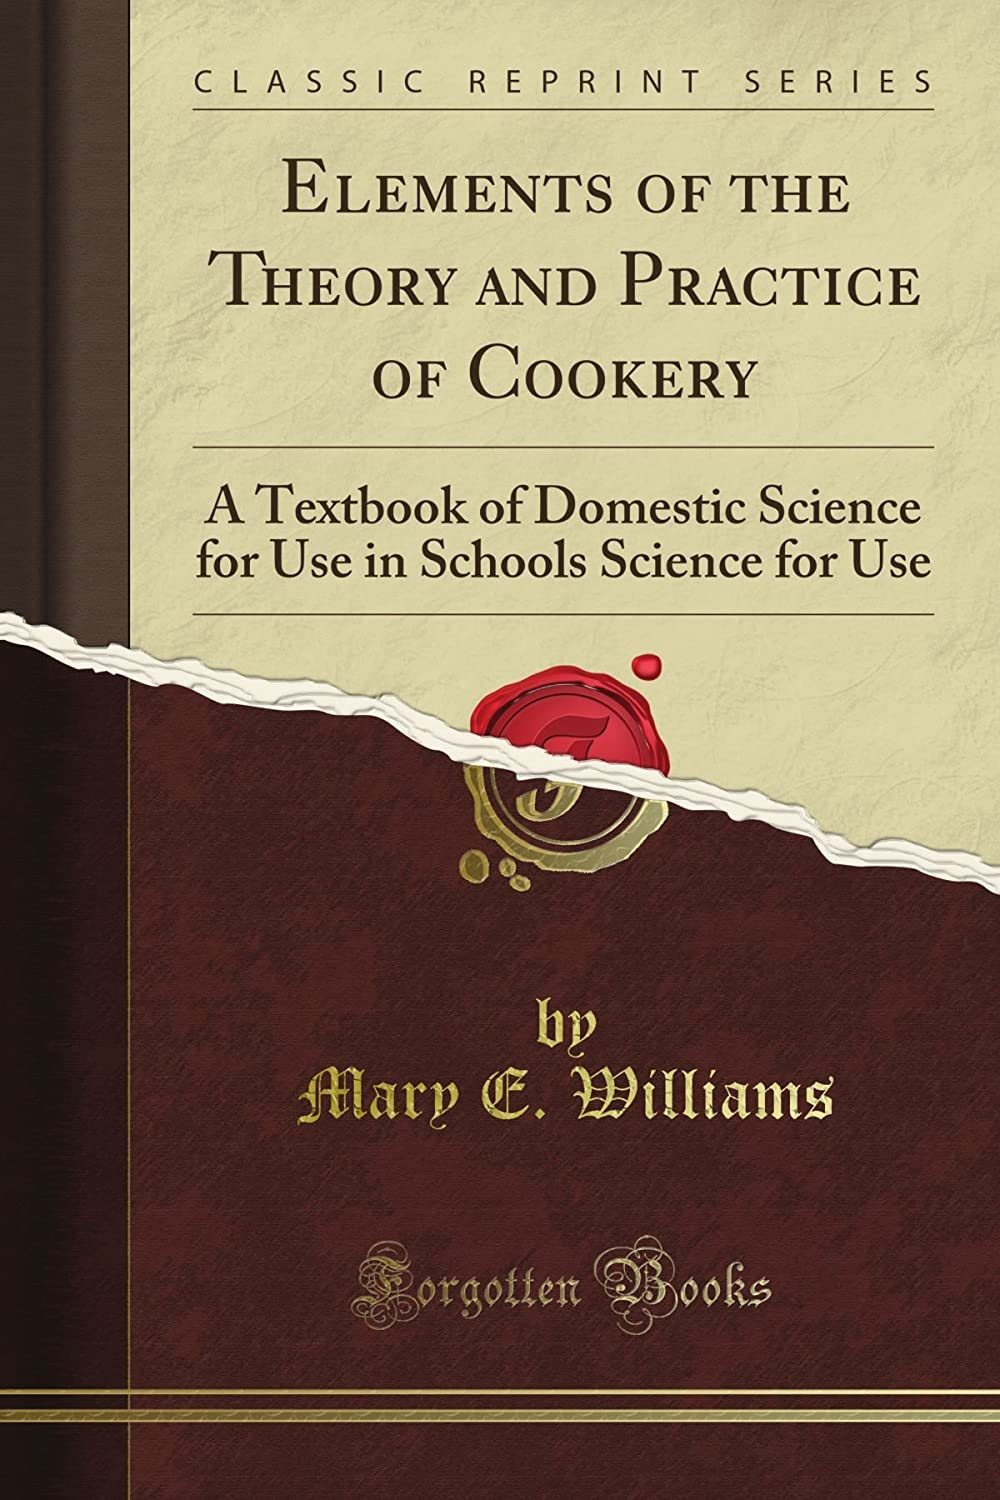 Elements of the Theory and Practice of Cookery: A Textbook of Domestic Science for Use in Schools Science for Use (Classic Reprint)